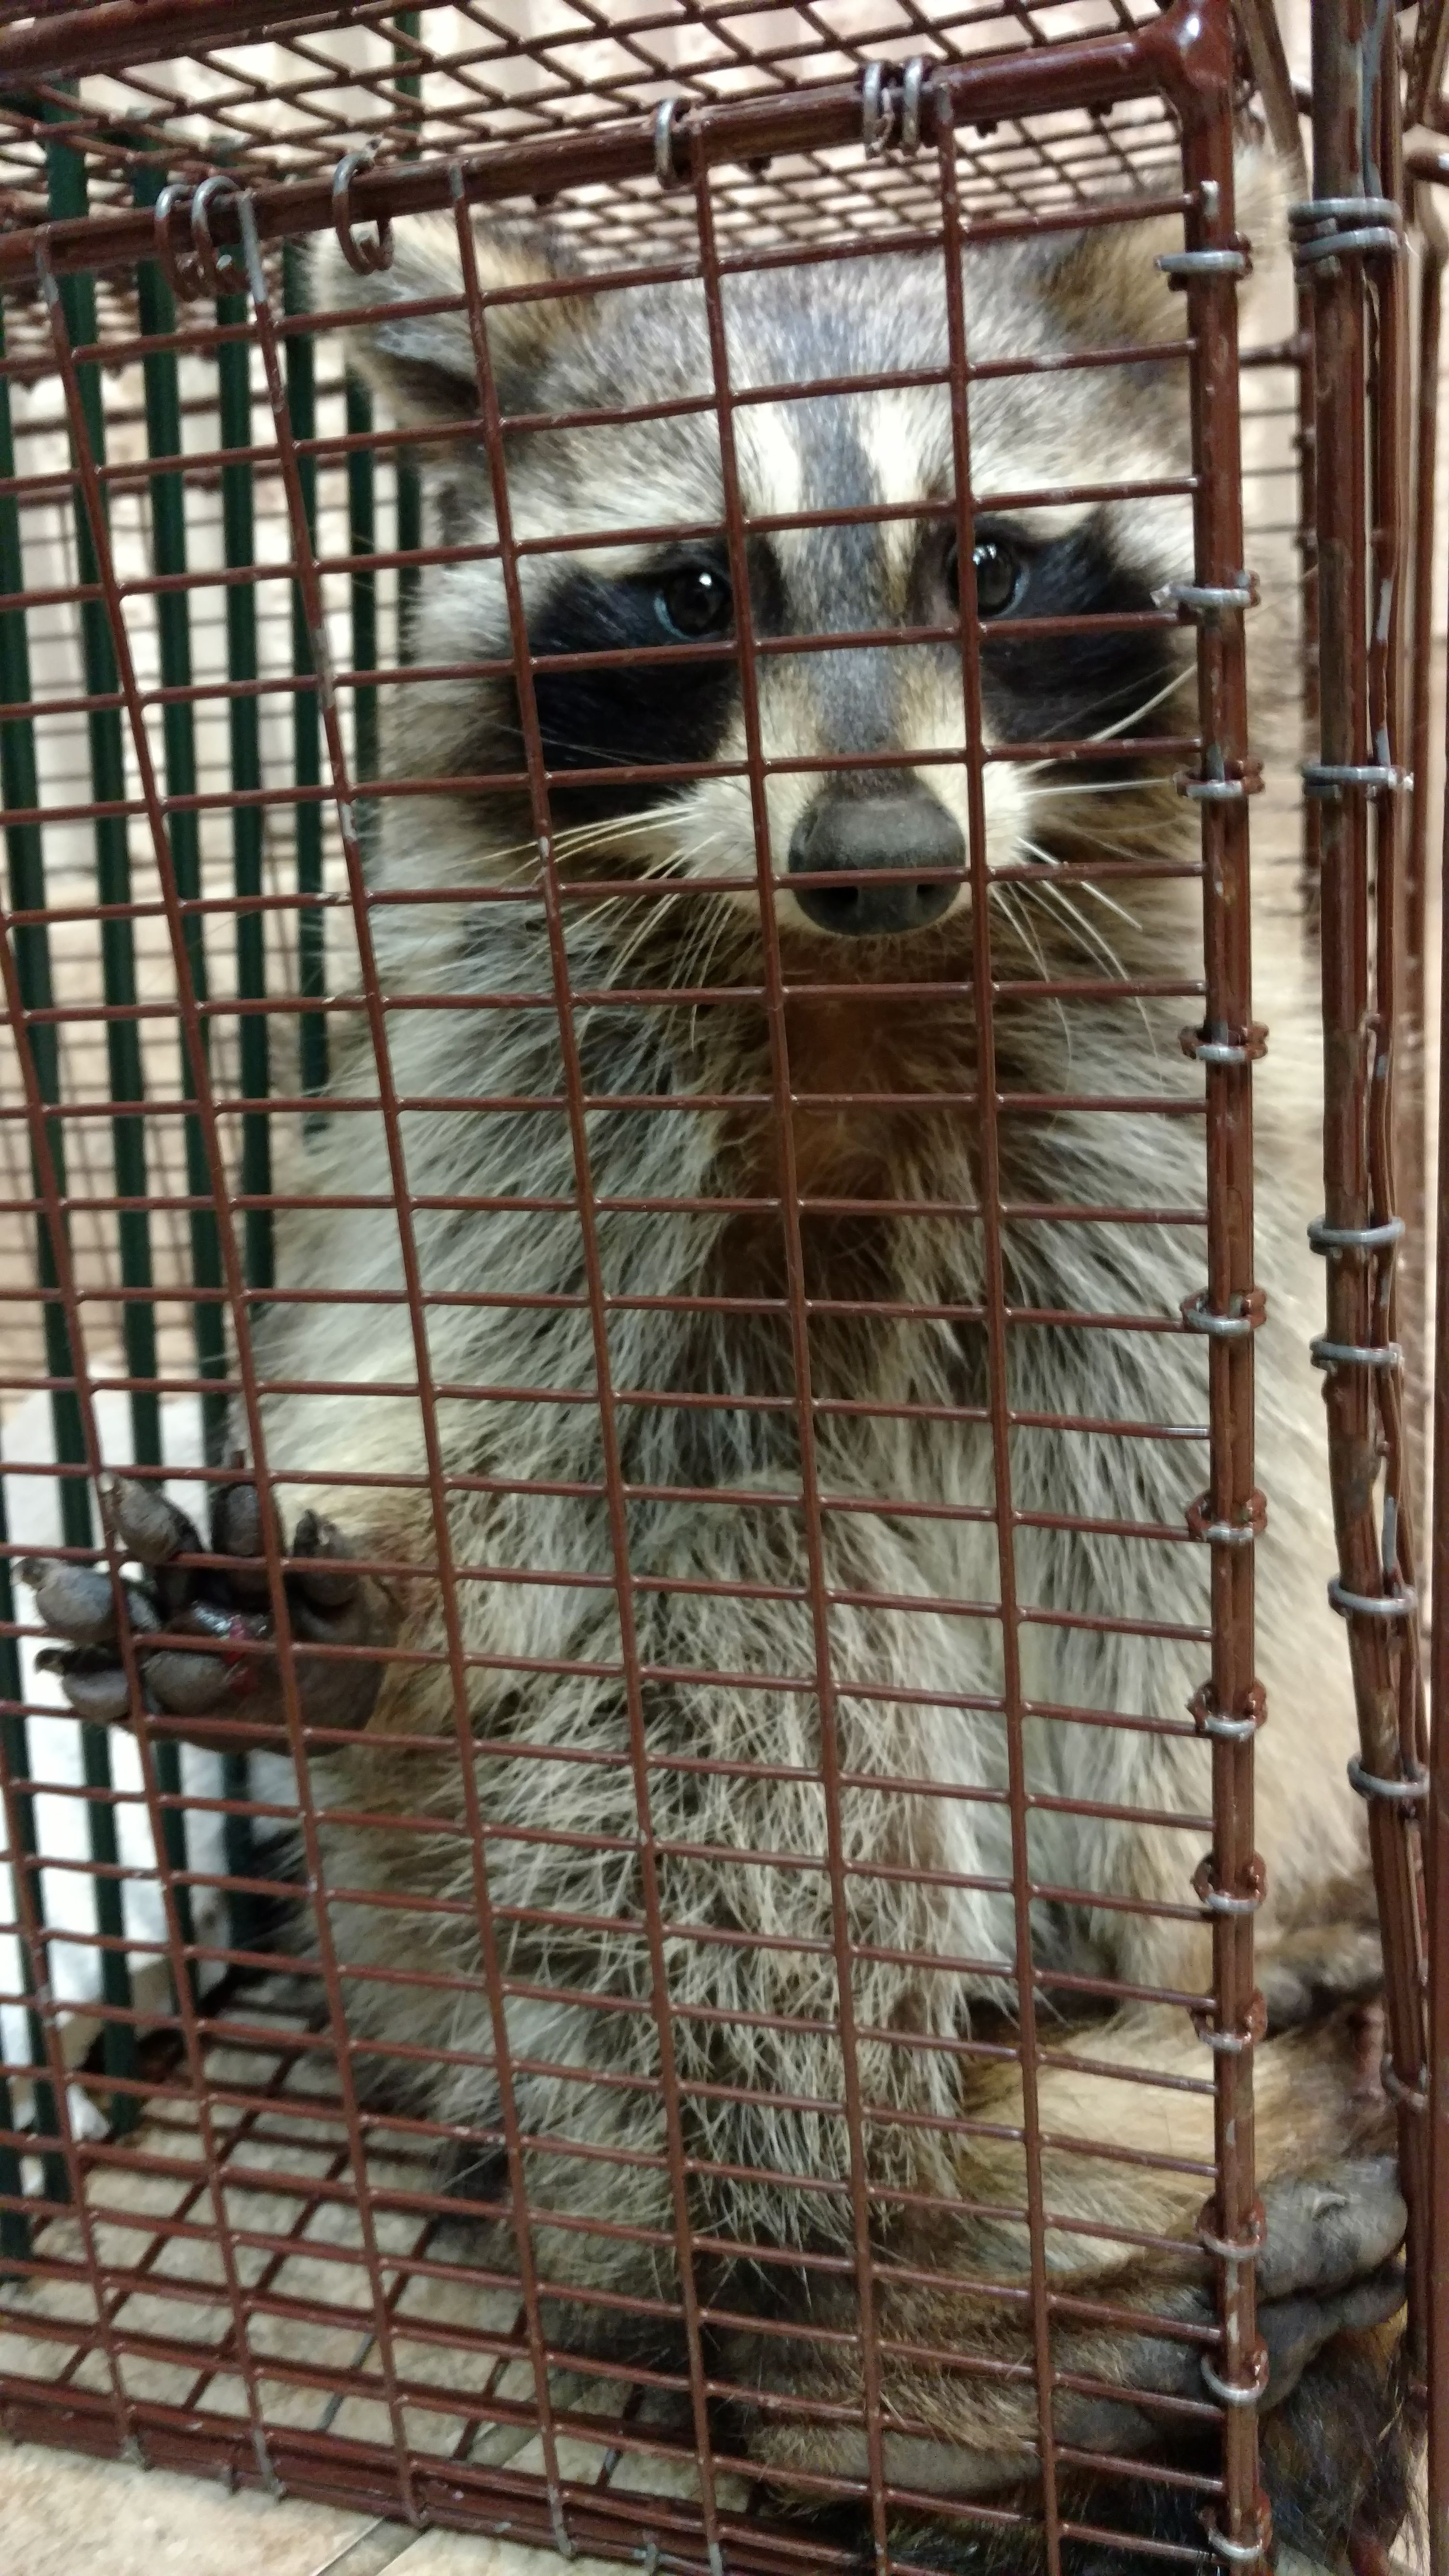 Raccoon Rescued from Leghold Trap